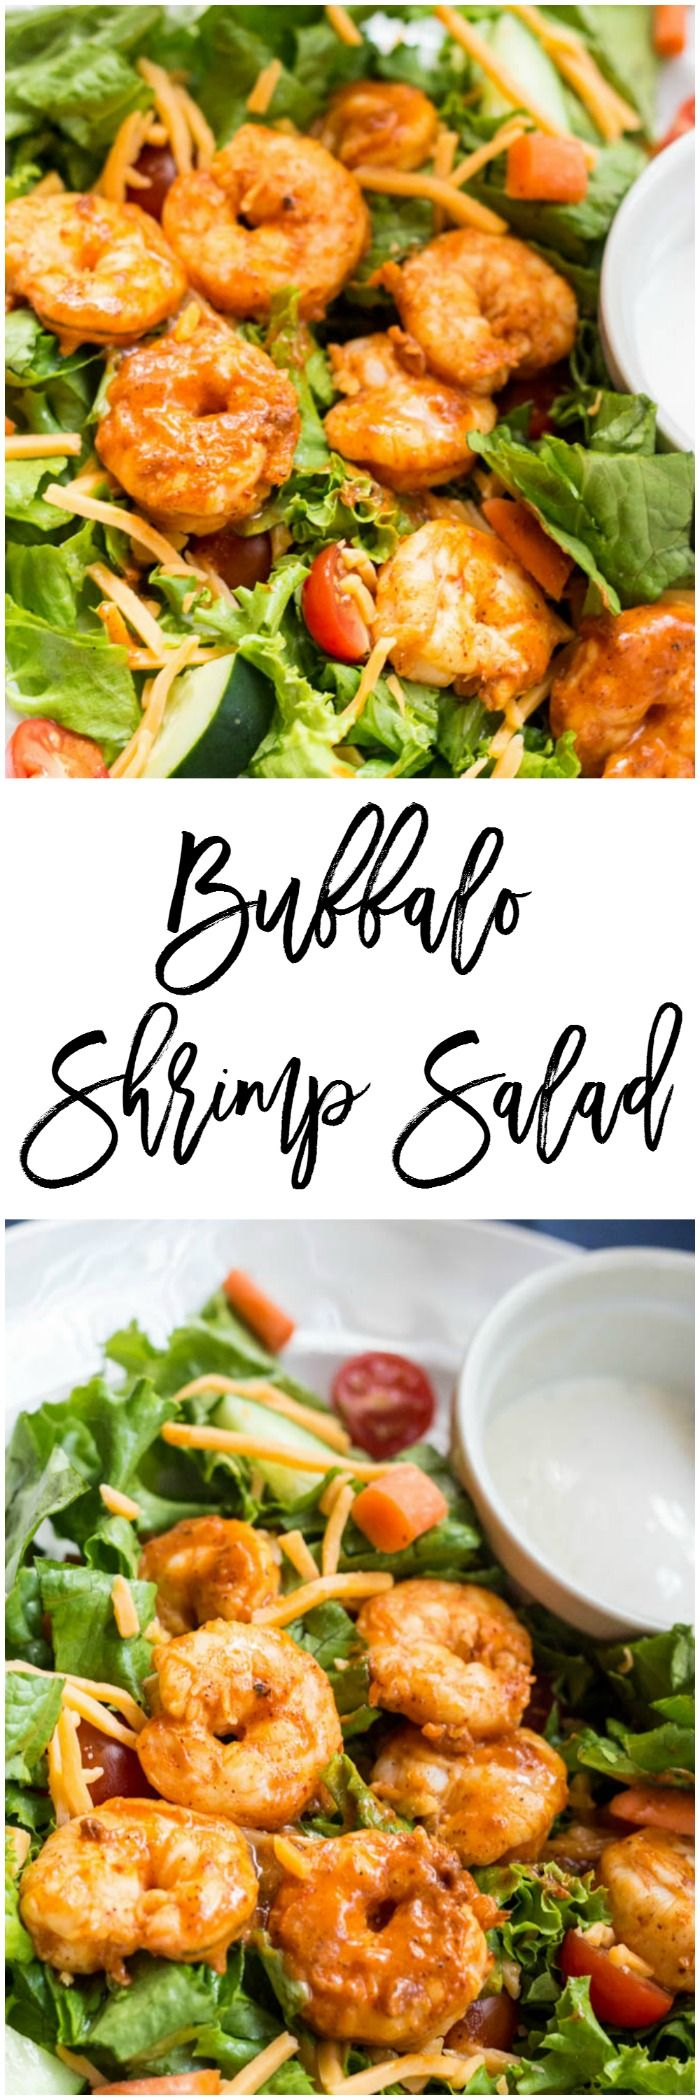 Buffalo Shrimp Salad - Let's talk about lunch.  I know that it can be hard to eat a delicious, easy lunch when you are on the go.  This buffalo shrimp salad takes about 10 minutes to make and is simple to throw together for a quick, healthy lunch.  It's only 6 SmartPoints on Weight Watchers. http://dashofherbs.com/buffalo-shrimp-salad/